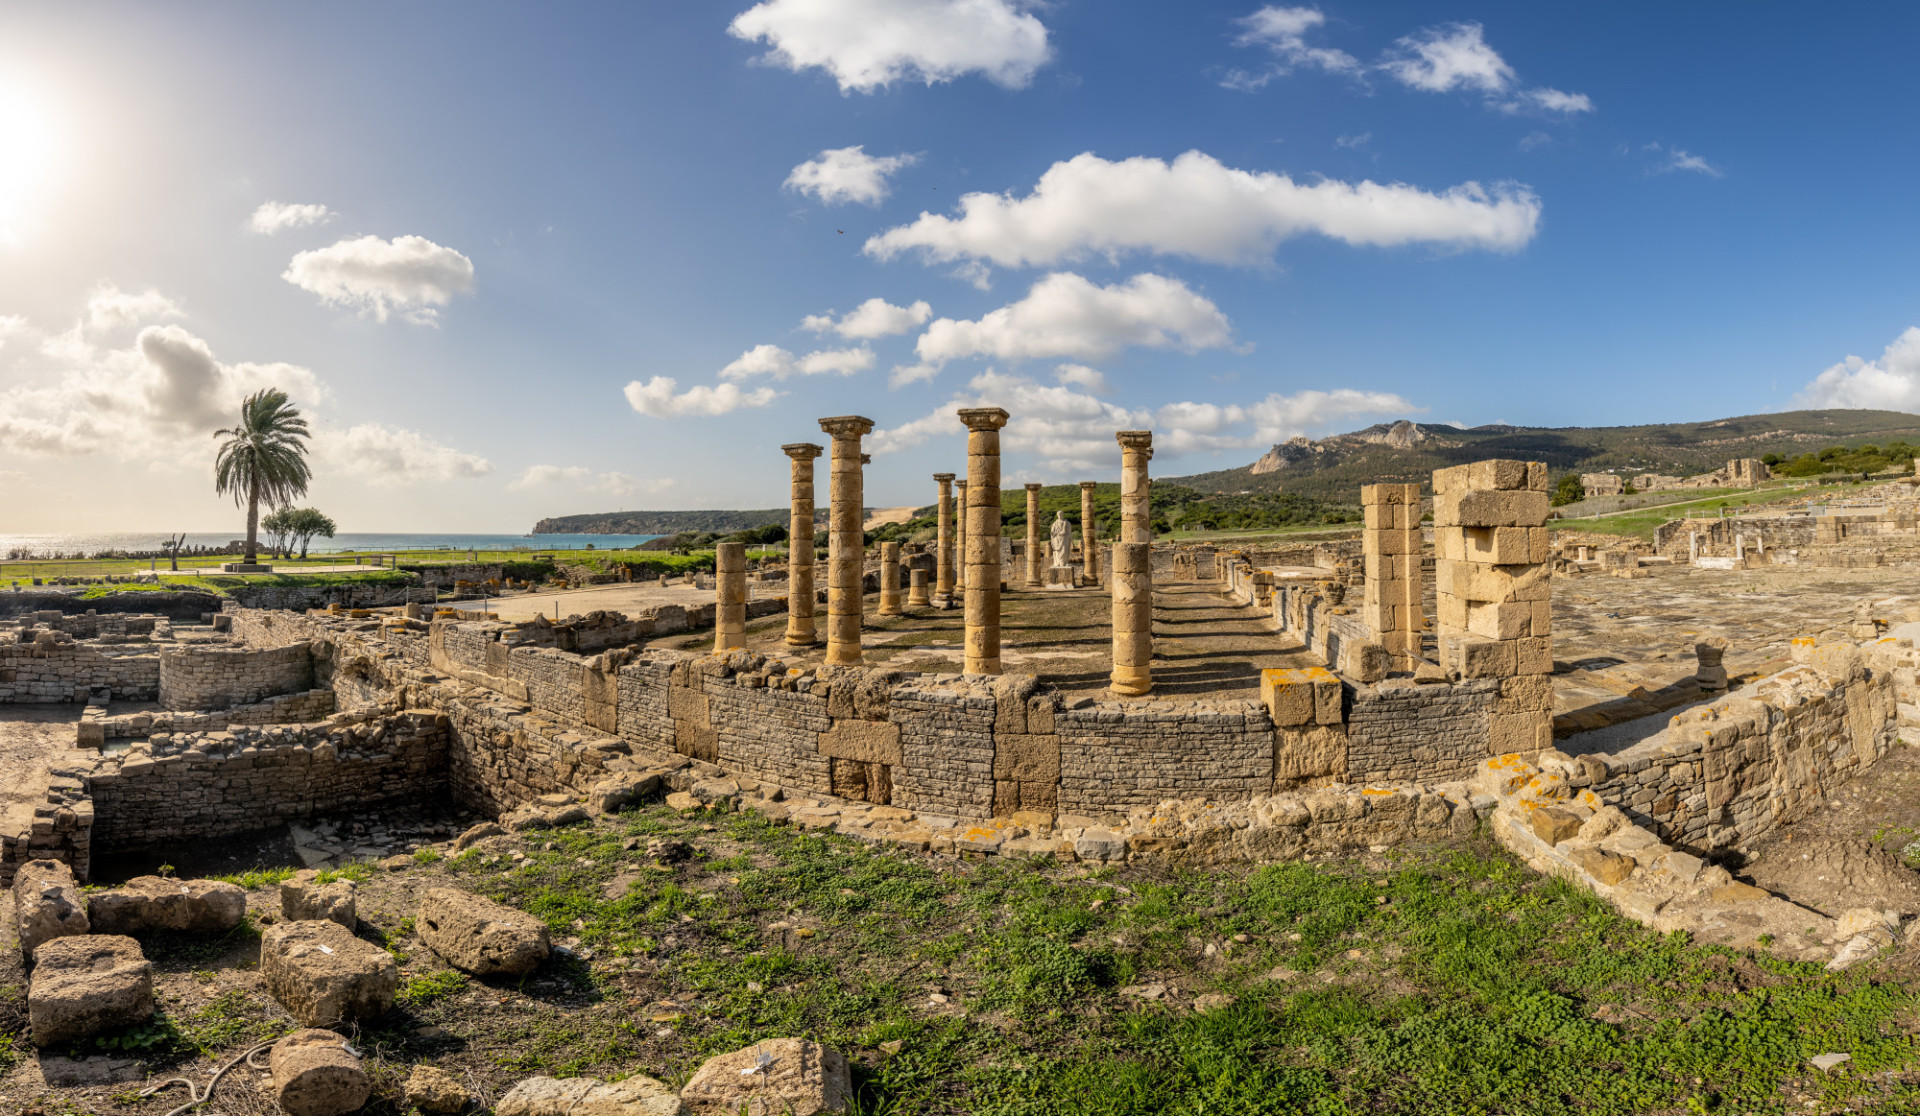 Archaeological excavation site of a Roman city in Spain